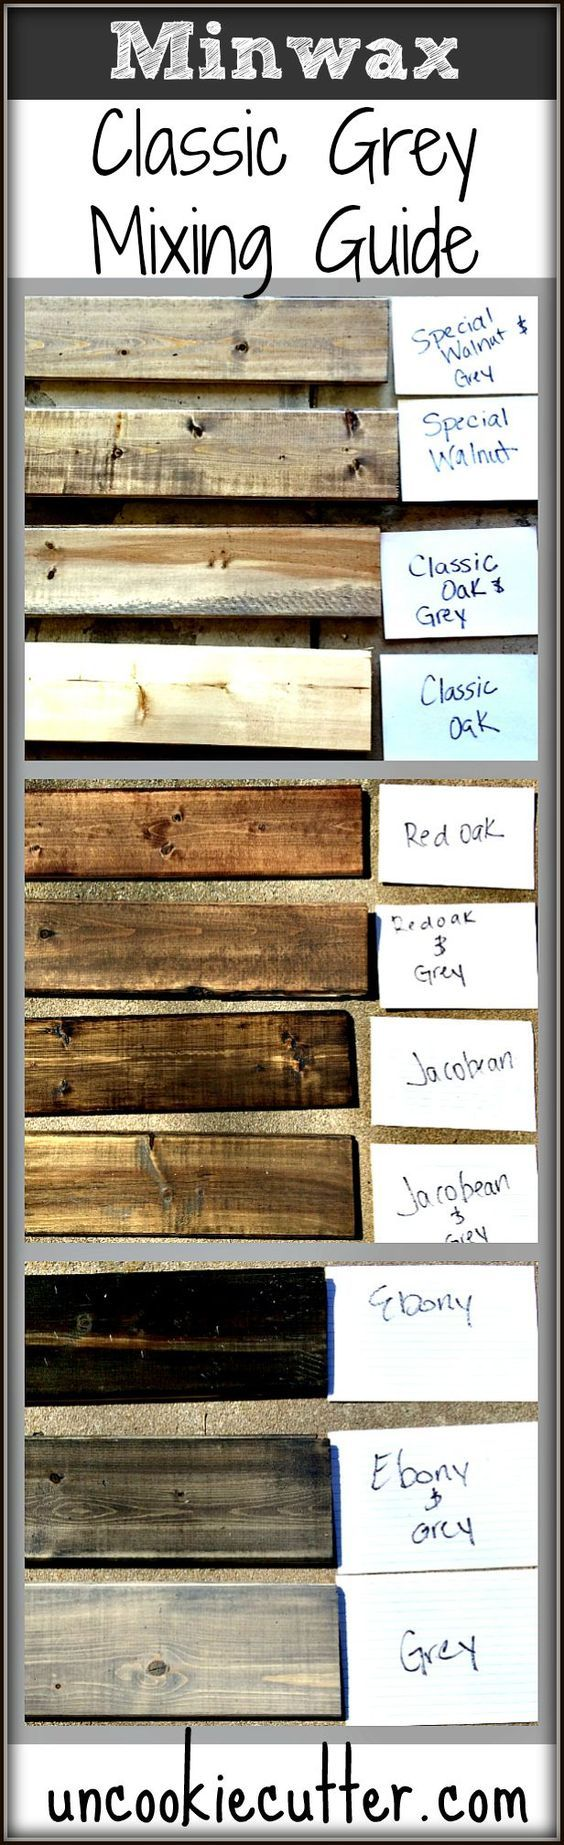 Mixed Wood Wall - Easy